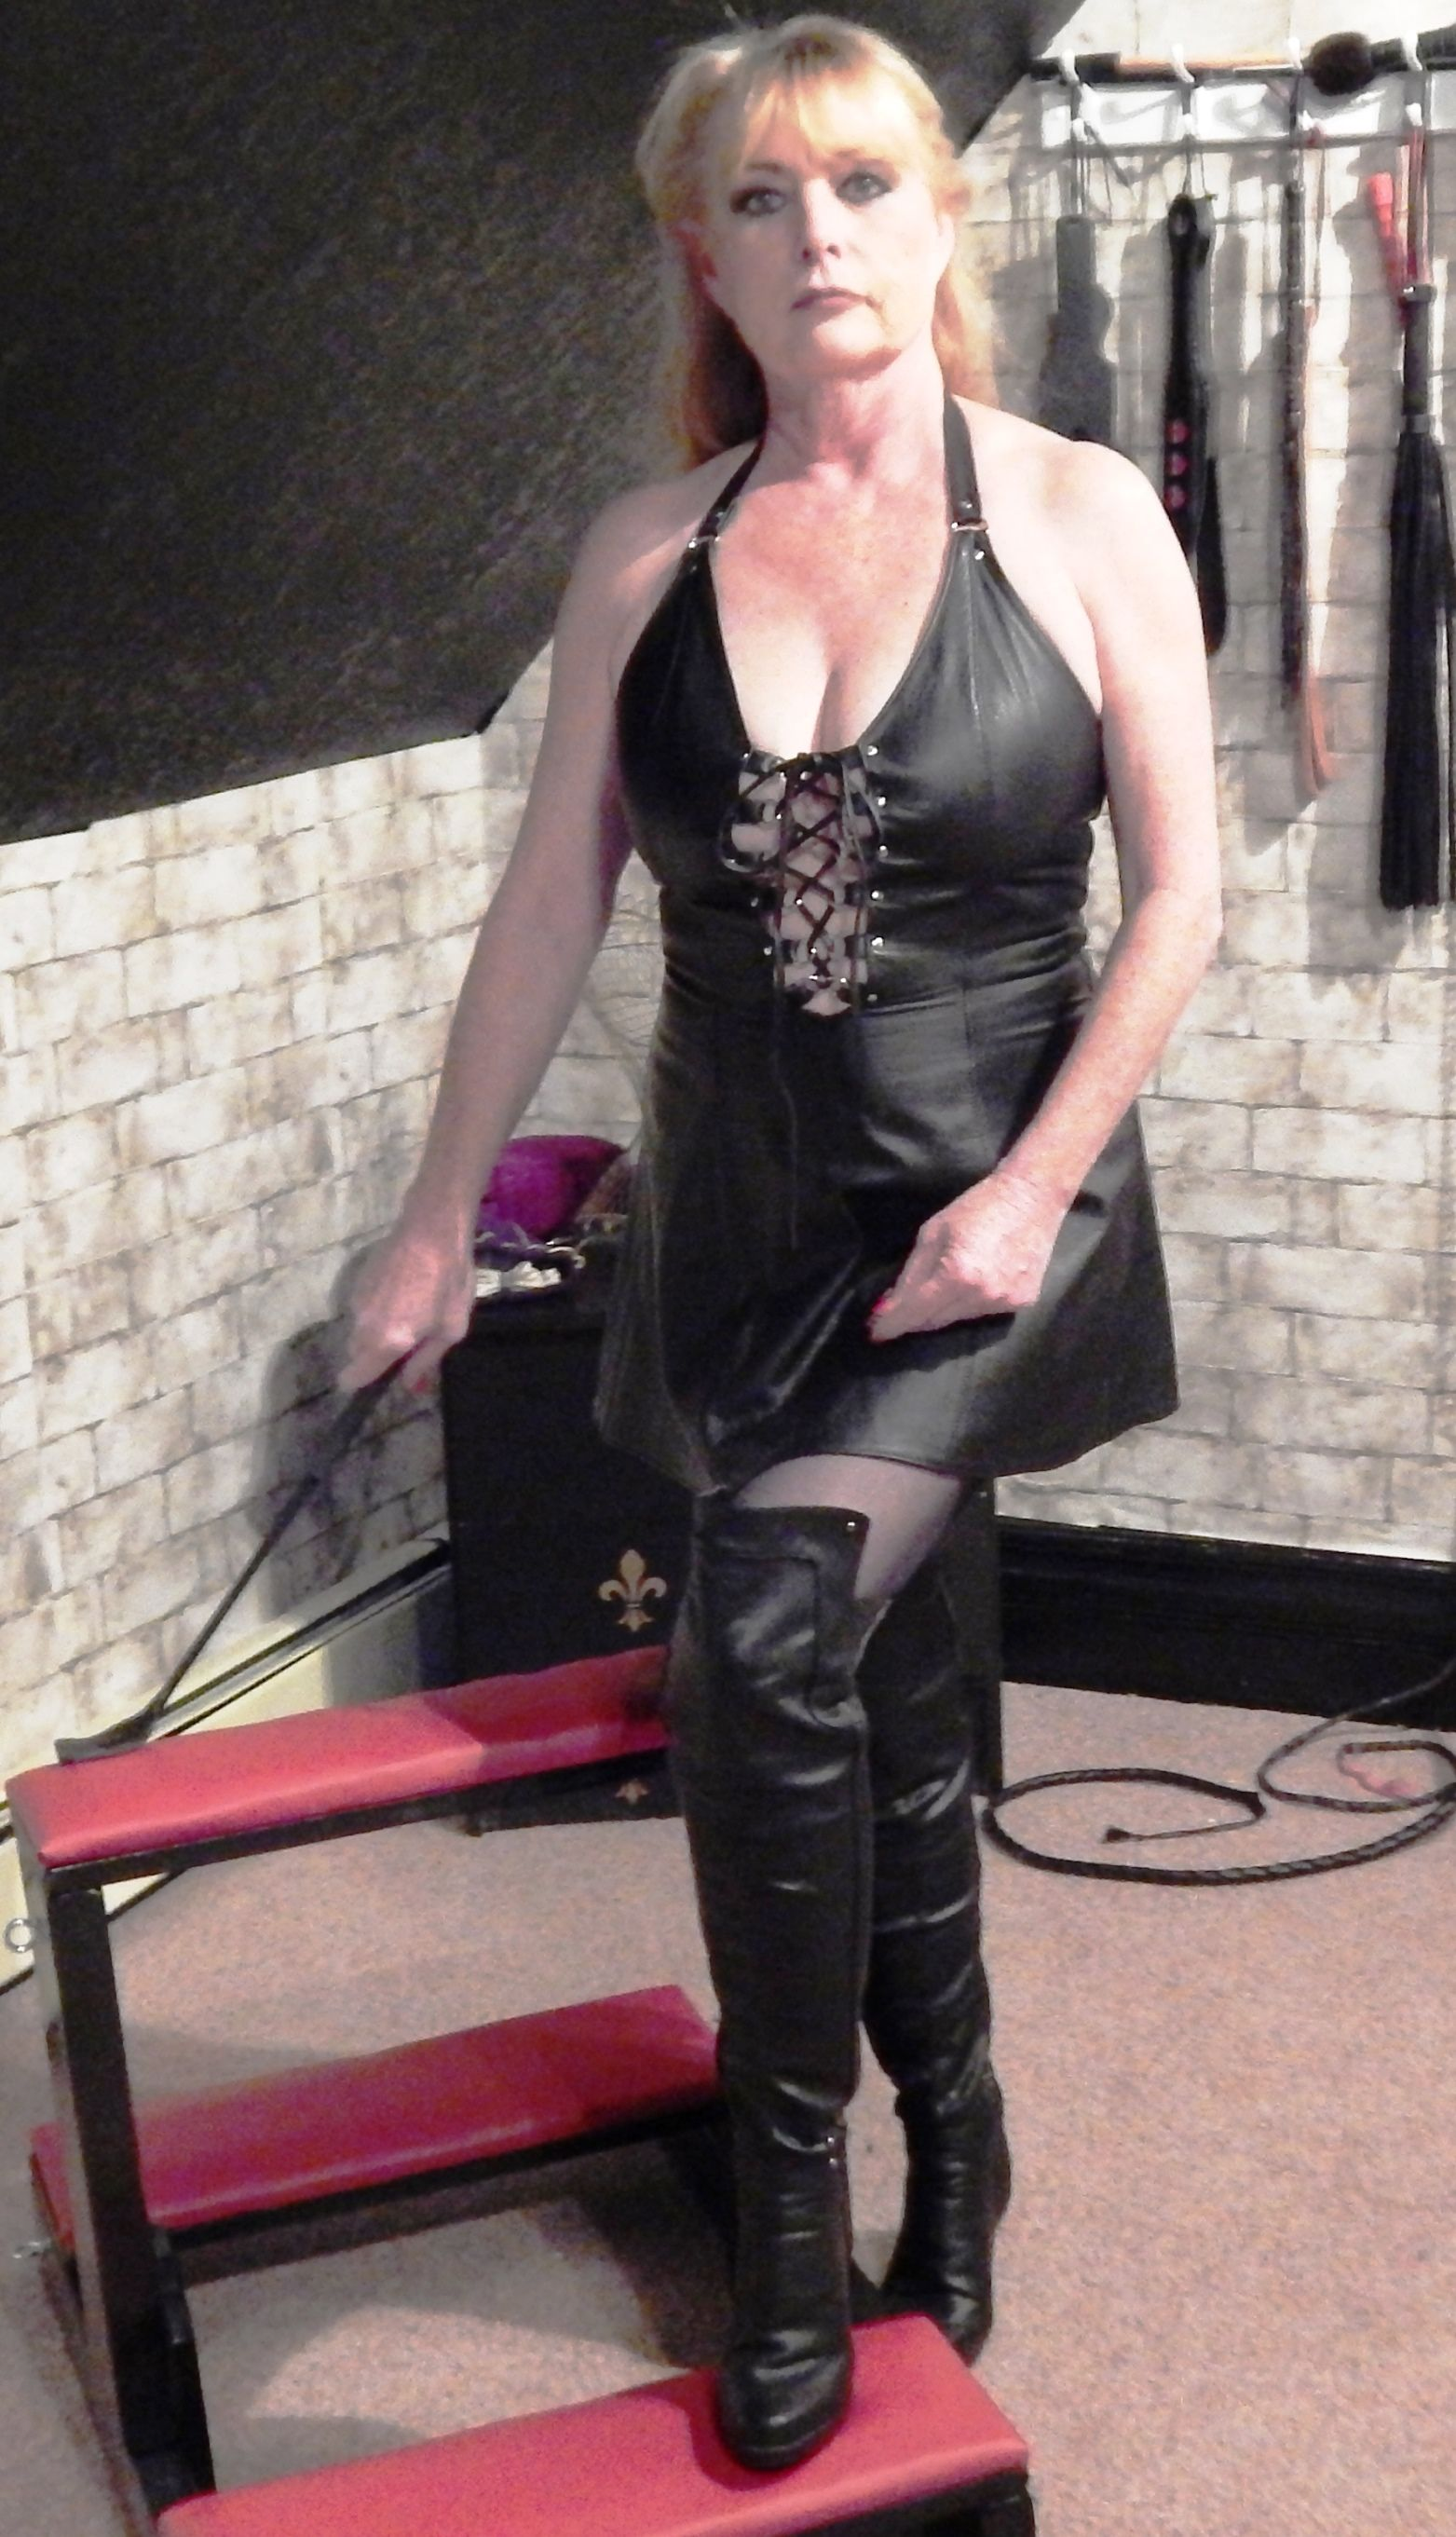 1000+ images about Female Domination & Male Servitude on Pinterest ...